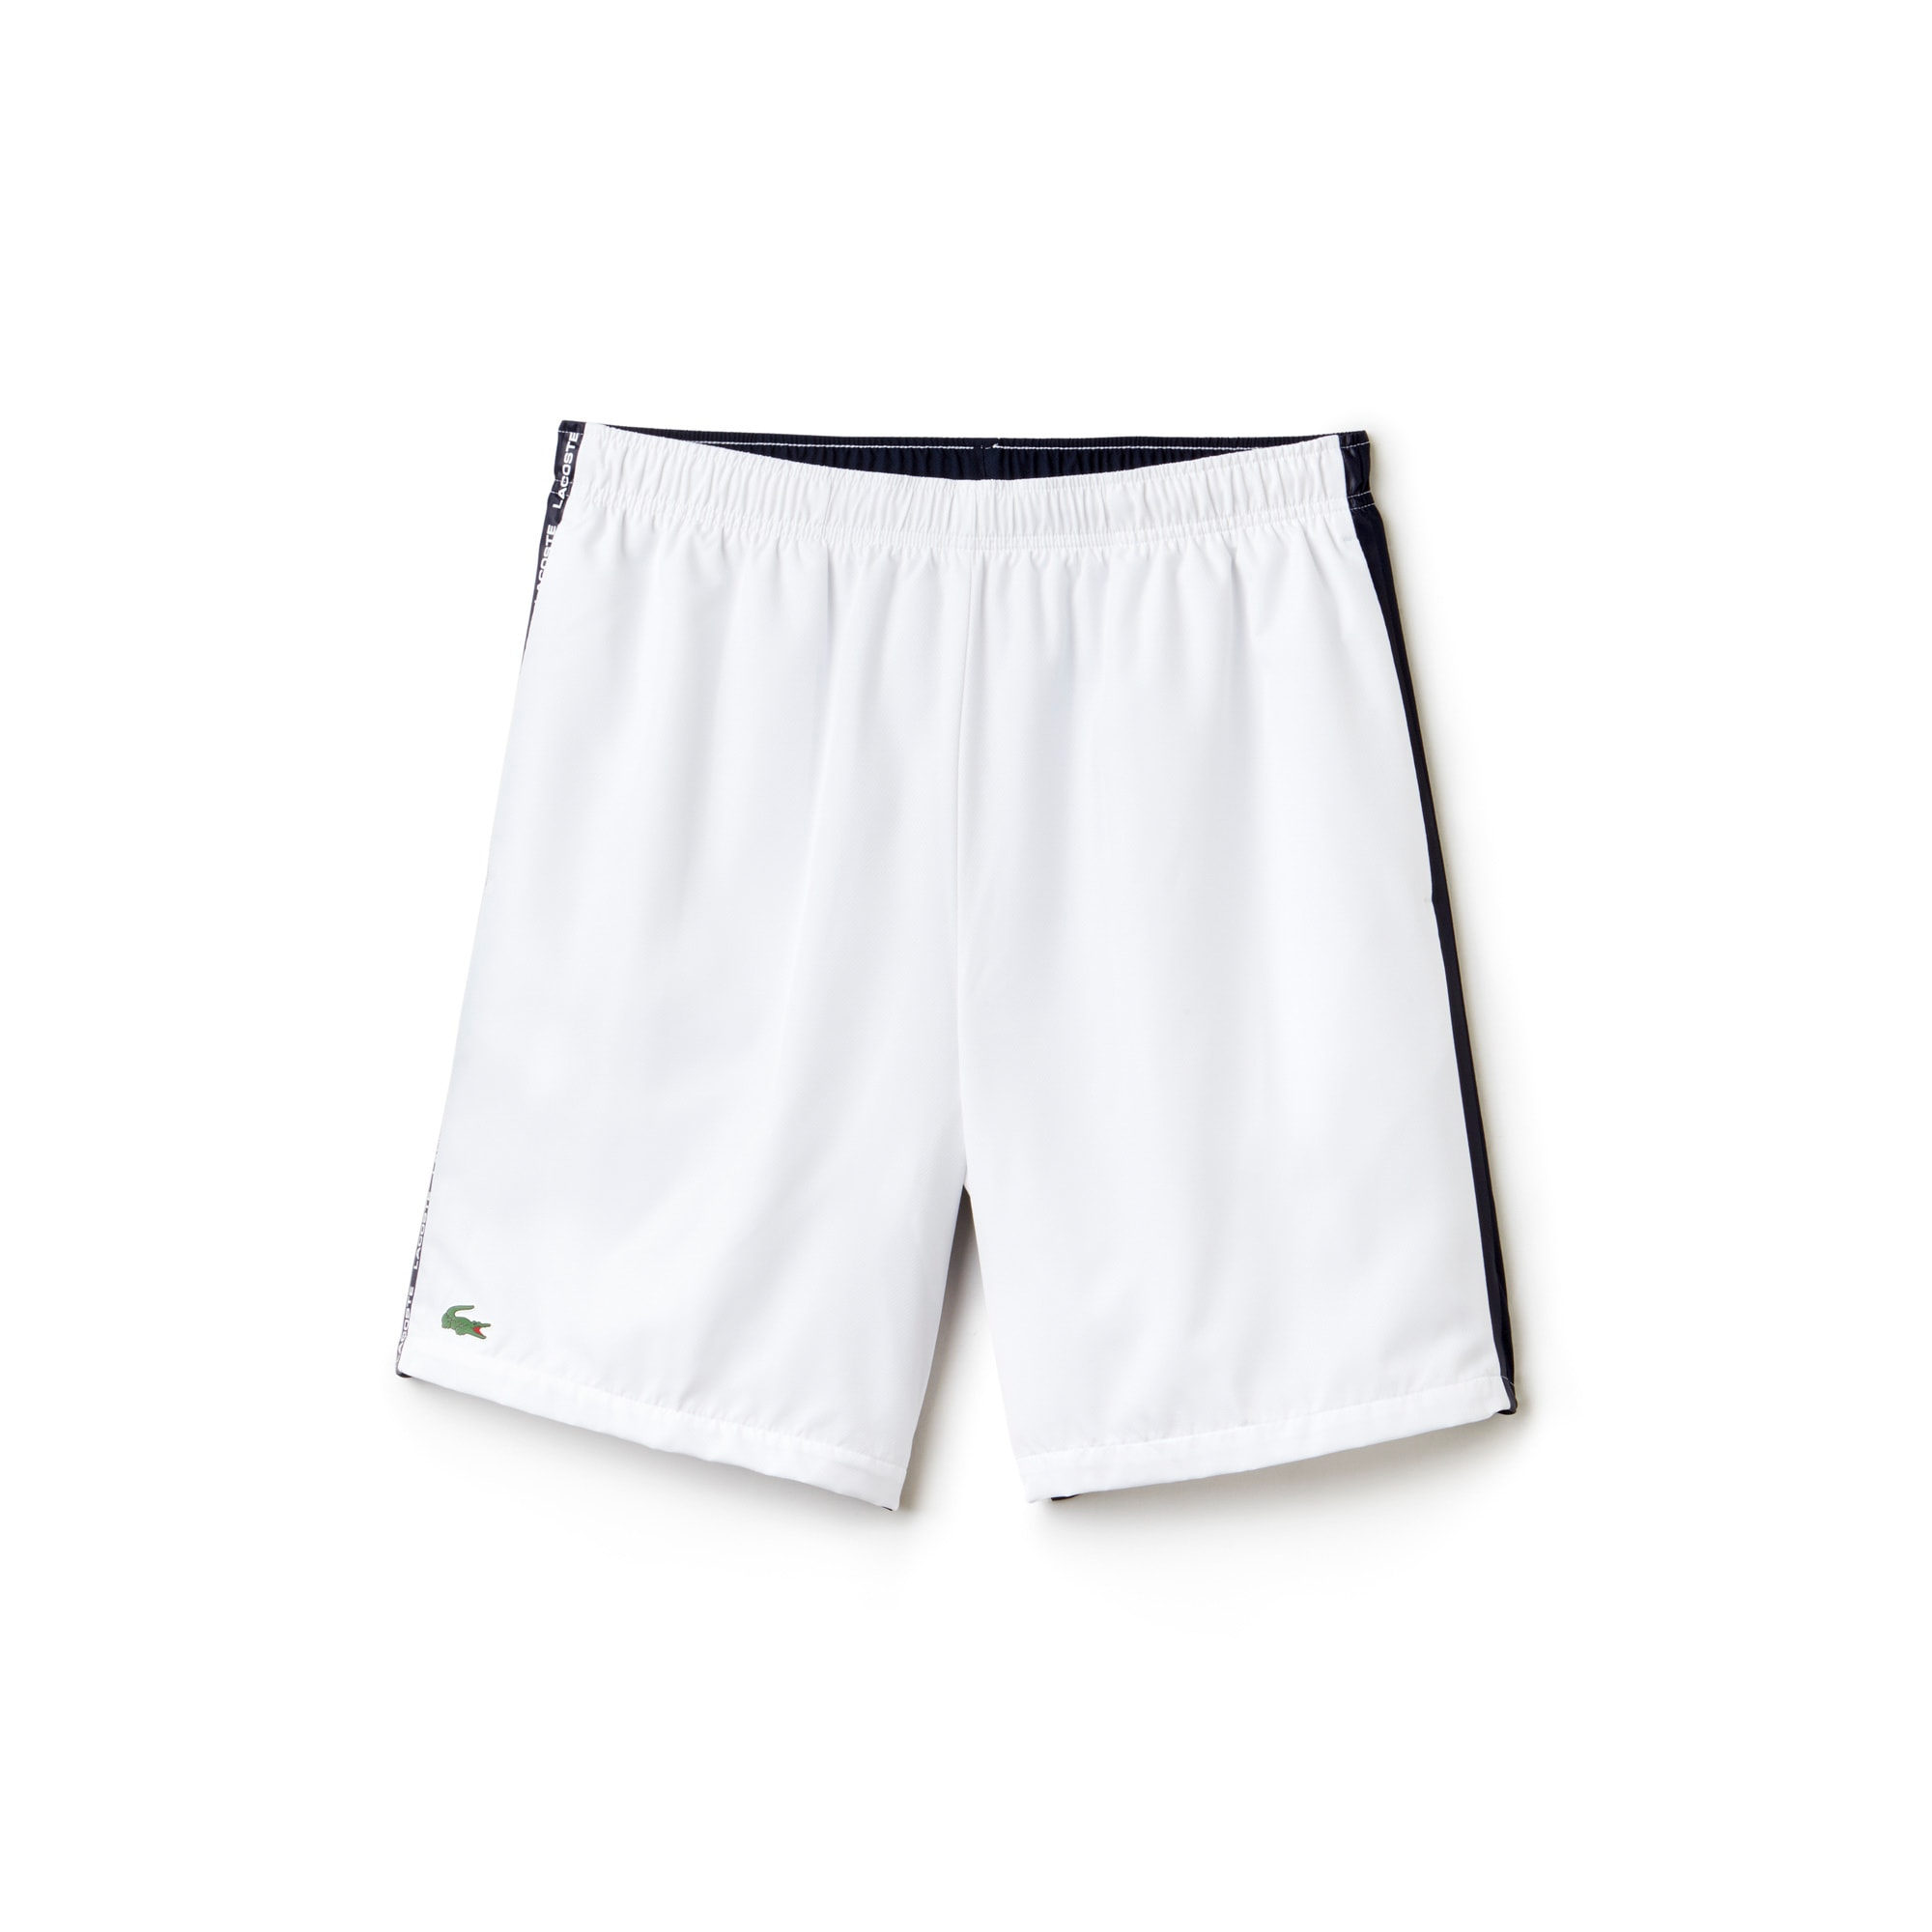 Men's Lacoste SPORT Tennis Colorblock Shorts